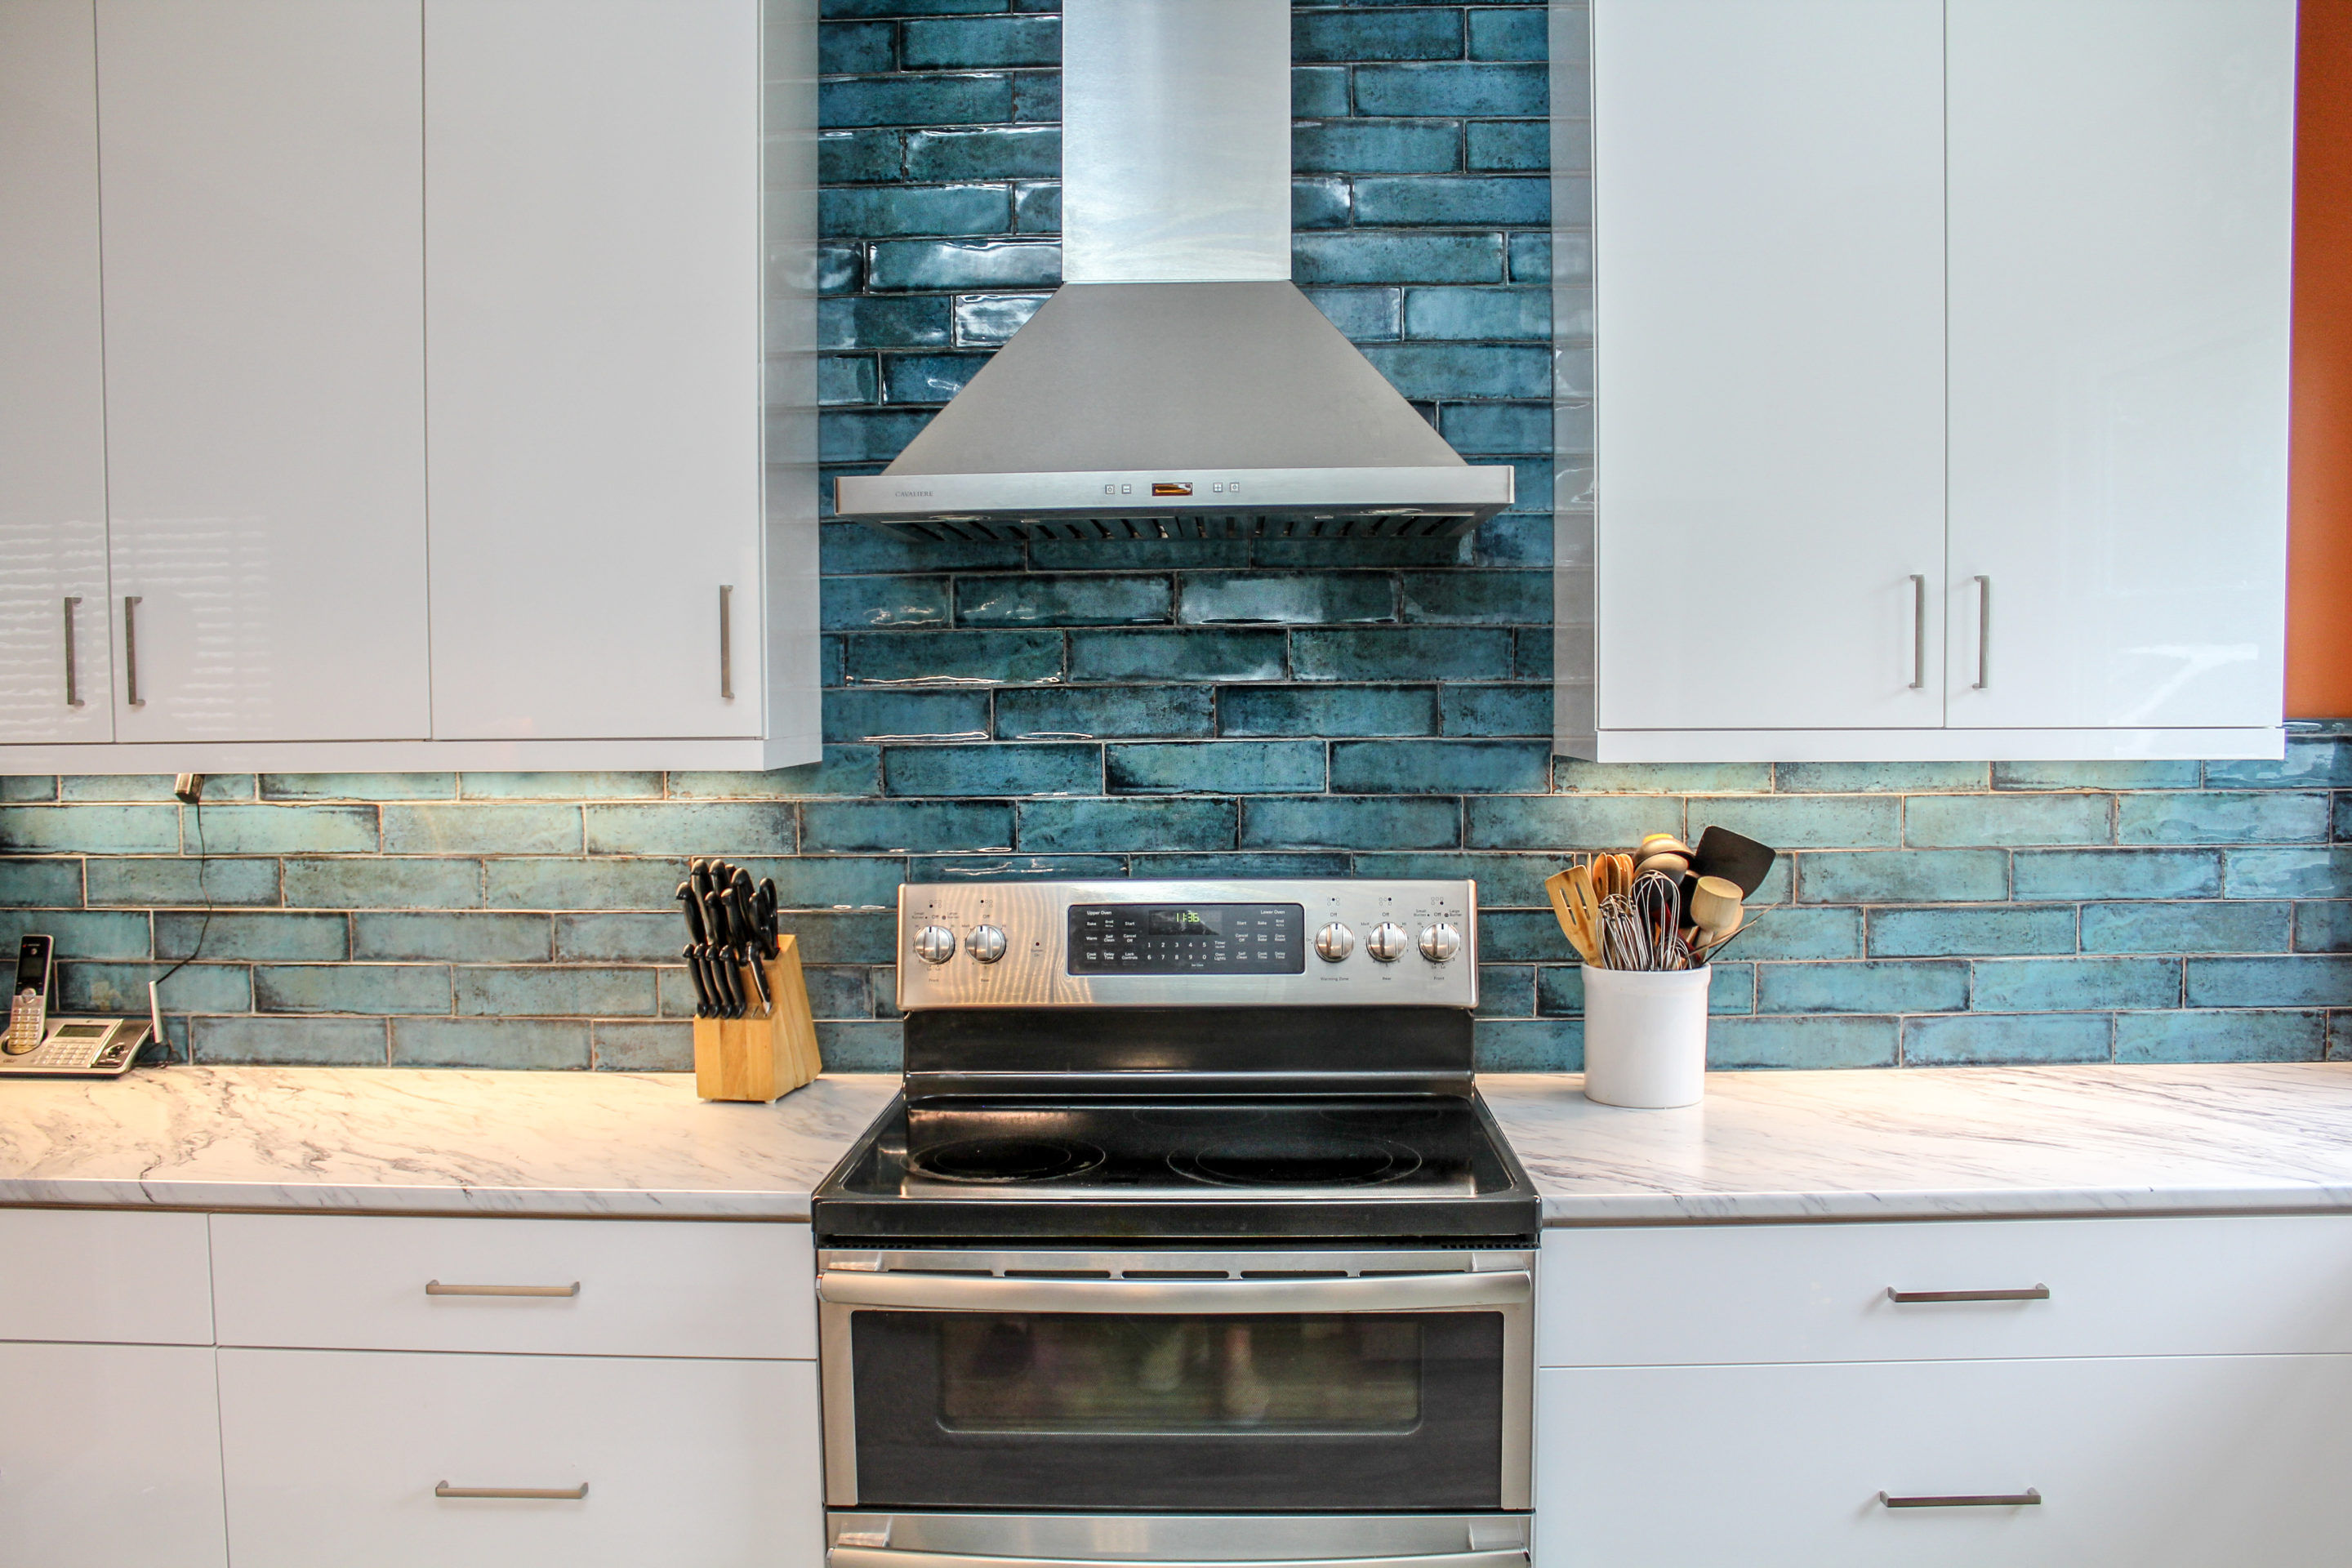 Kitchen Range and Range Hood backsplash tile